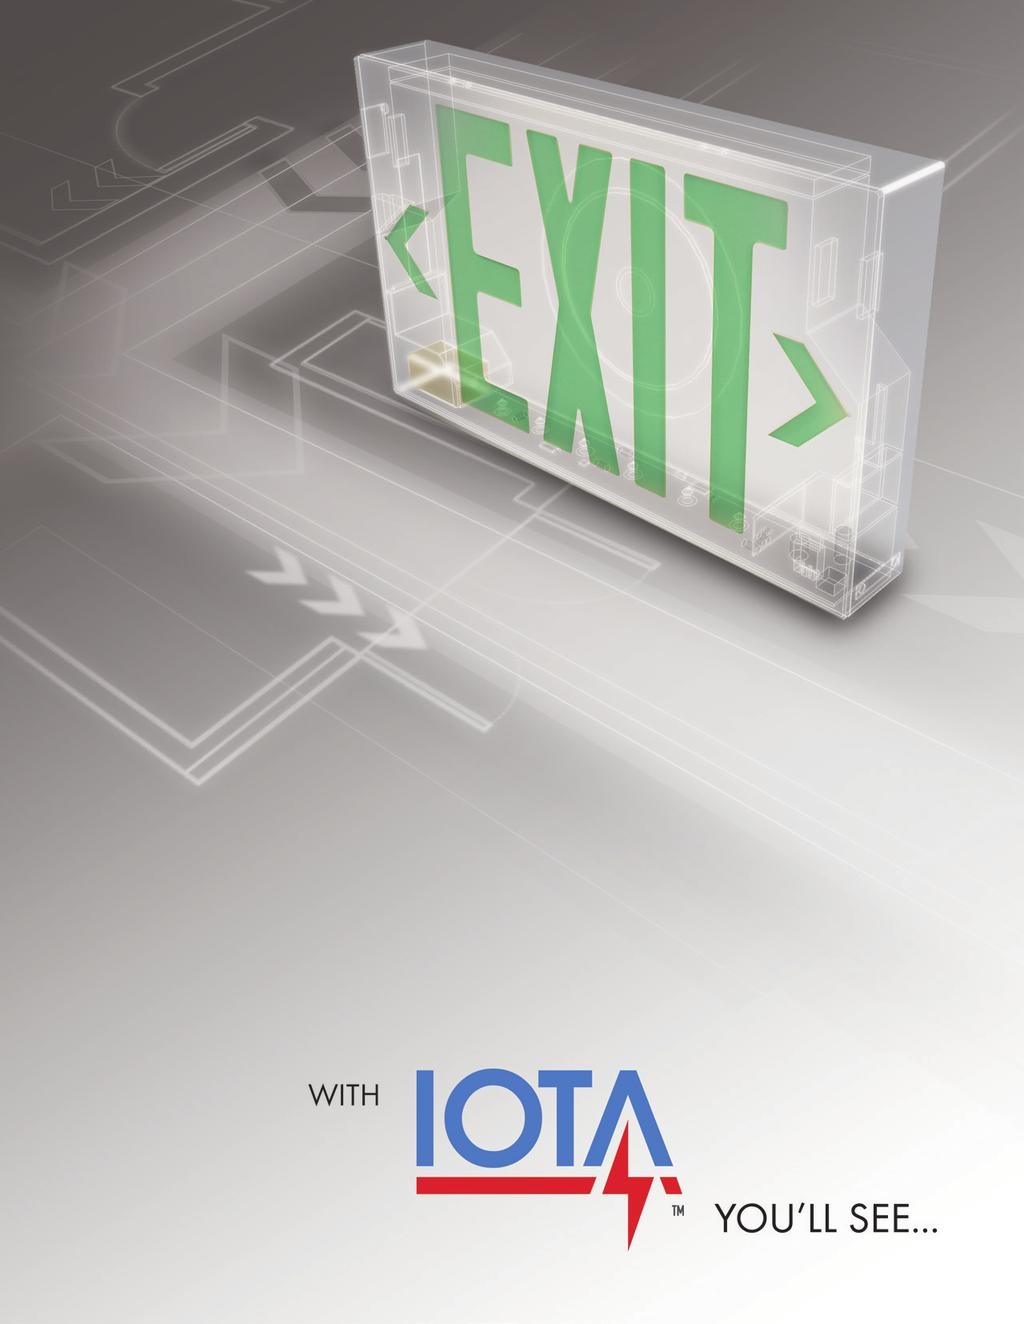 Iota Exit Signs Emergency Fixtures Pdf Ballast Wiring Diagram Style And Option Features To Meet Your Application Requirements Bright Efficient Long